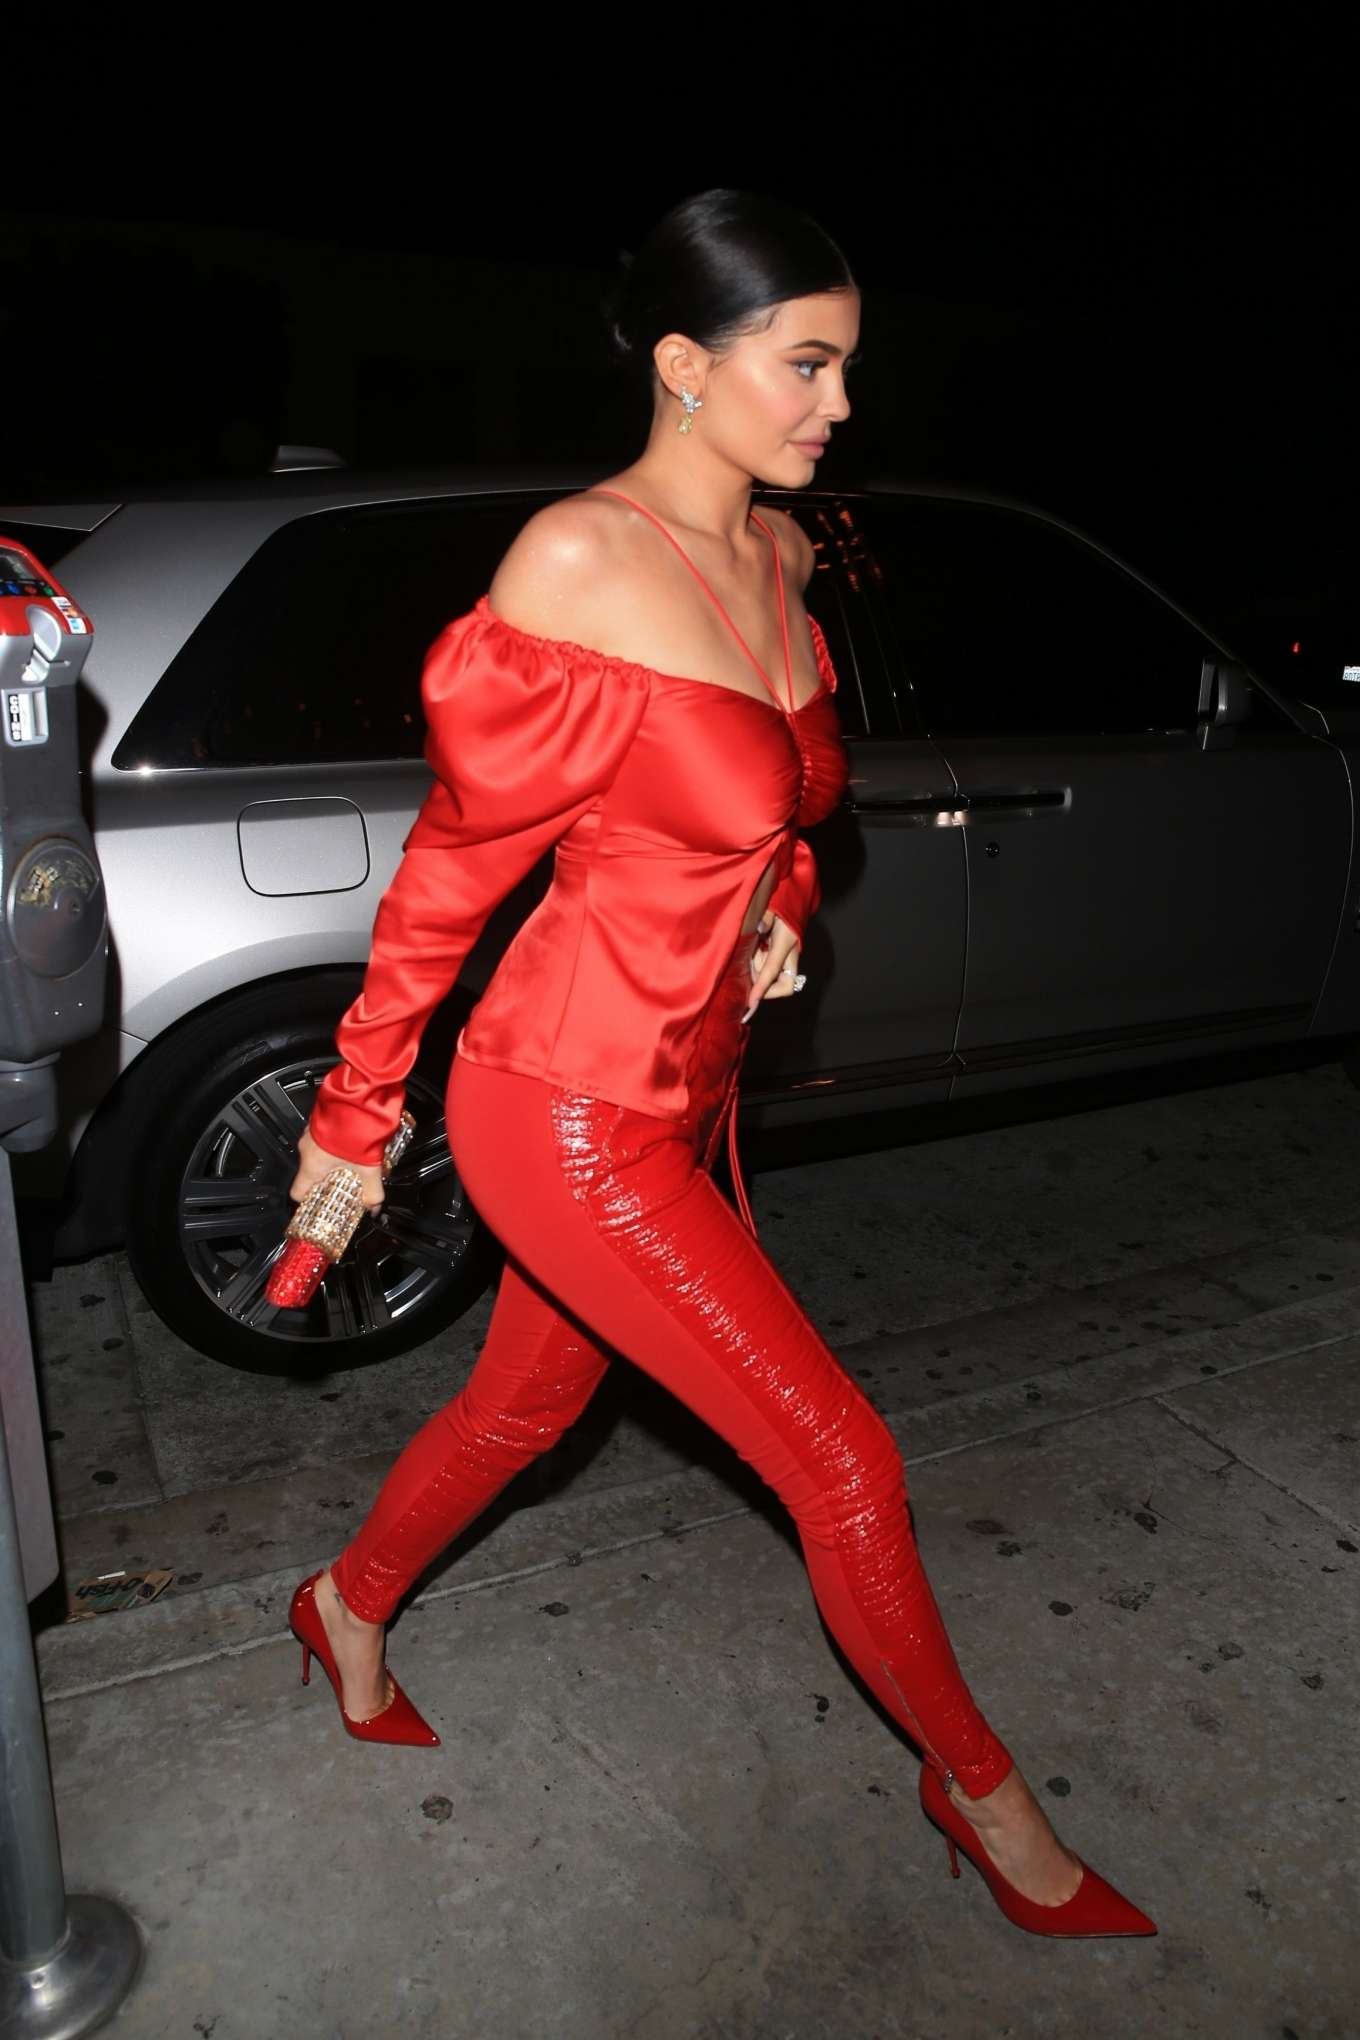 Kylie Jenner wearing High rise bright red leather jeggings with a leather fabric